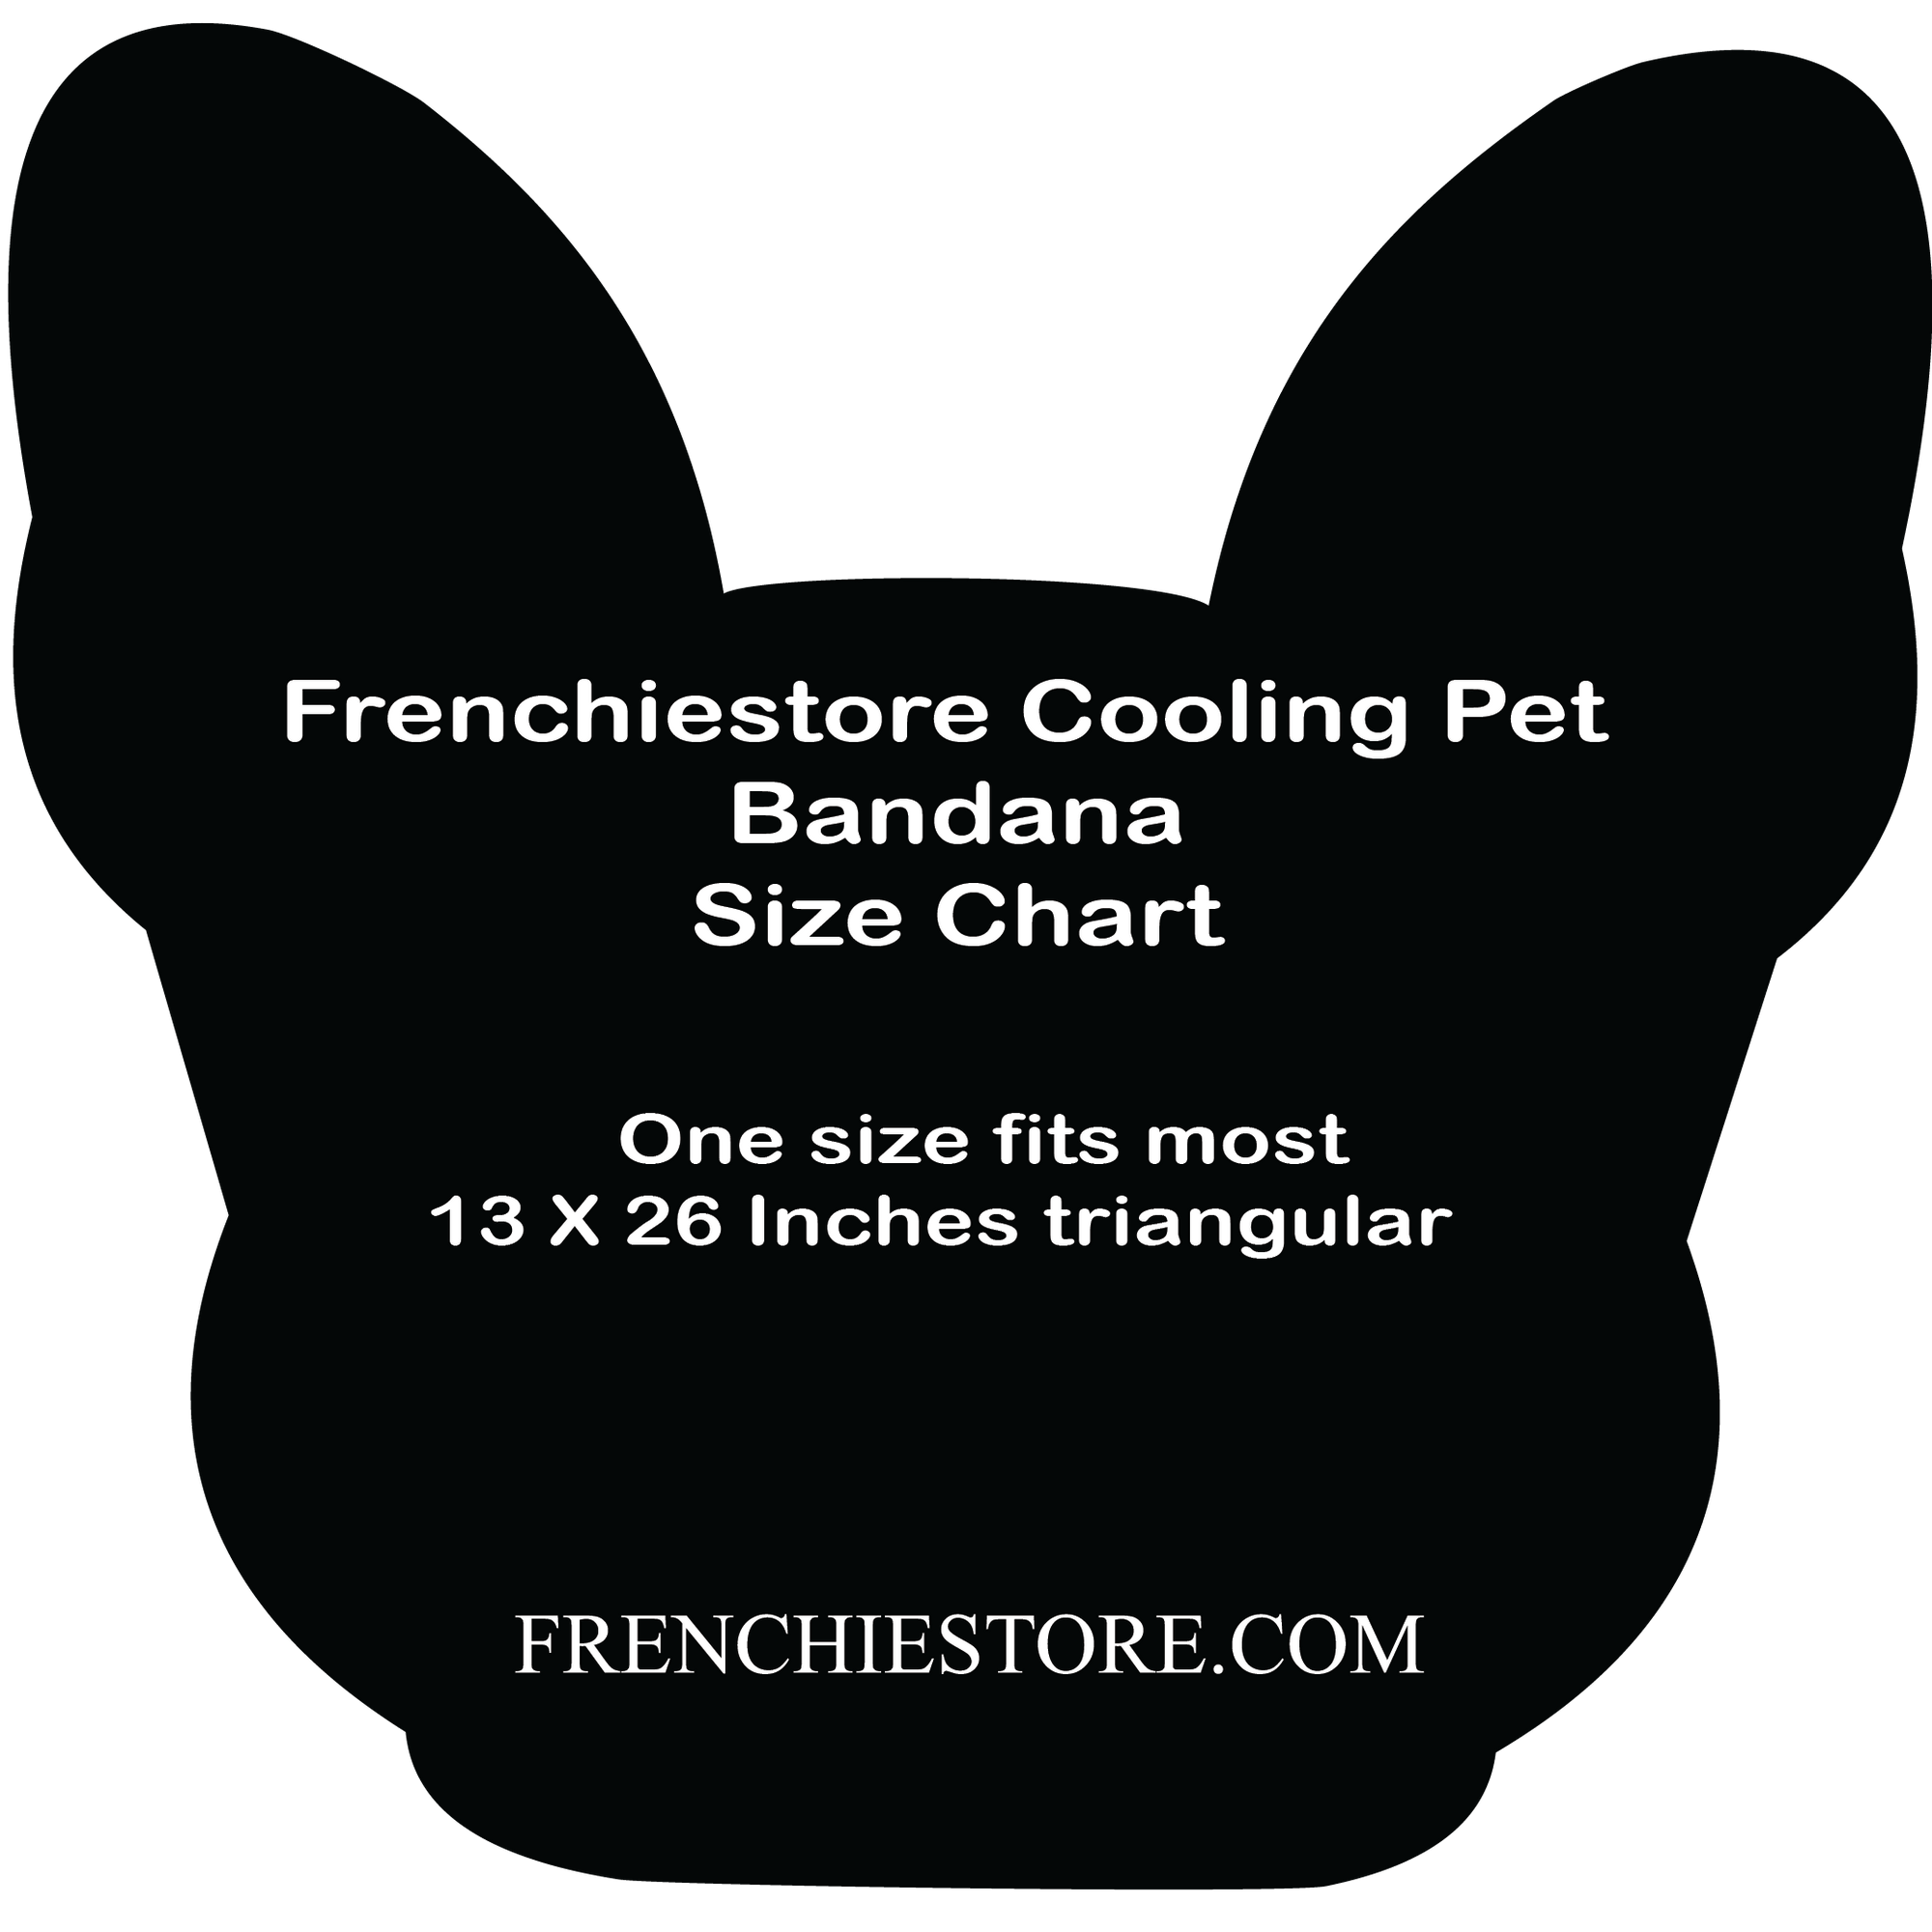 Frenchiestore Dog Cooling Bandana |  The Child